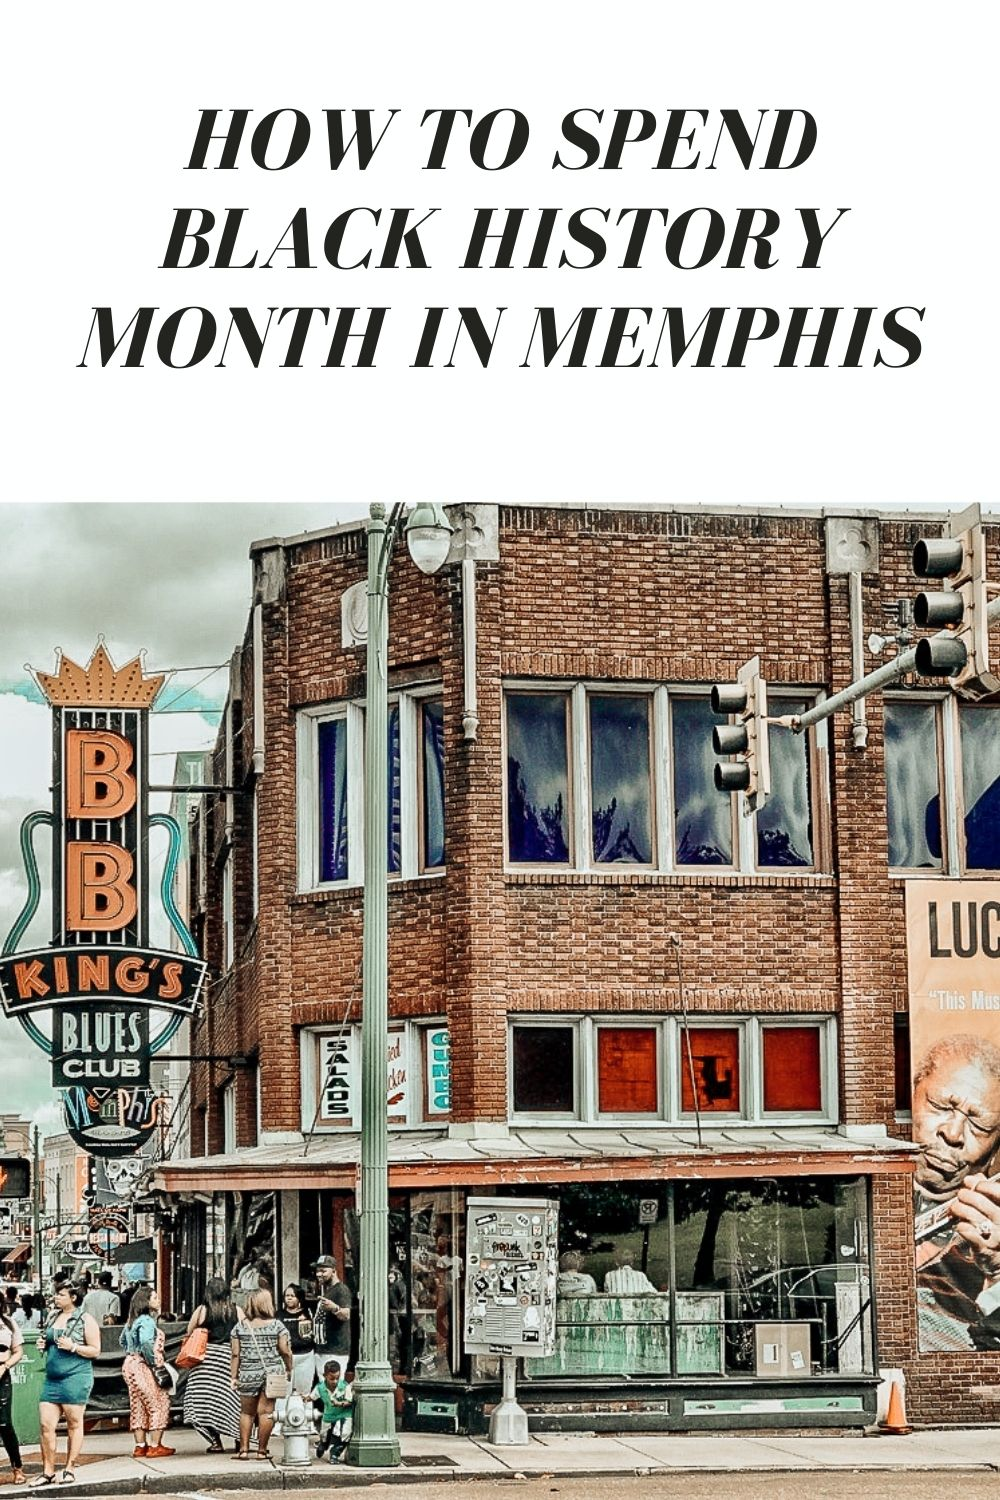 Beale Street- Black History Month